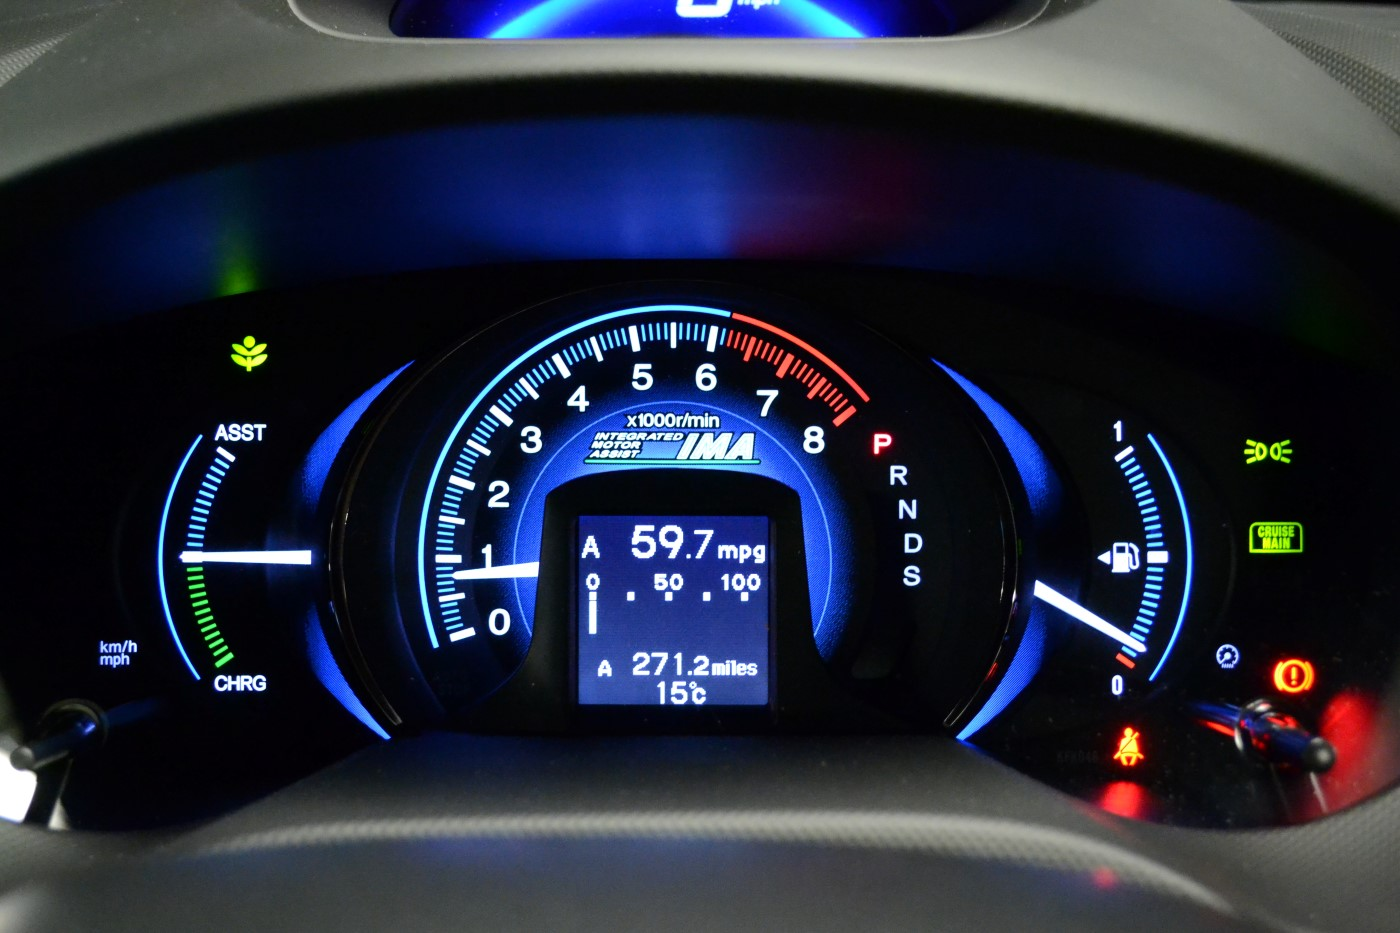 Average Mileage For A Honda City Car In Us